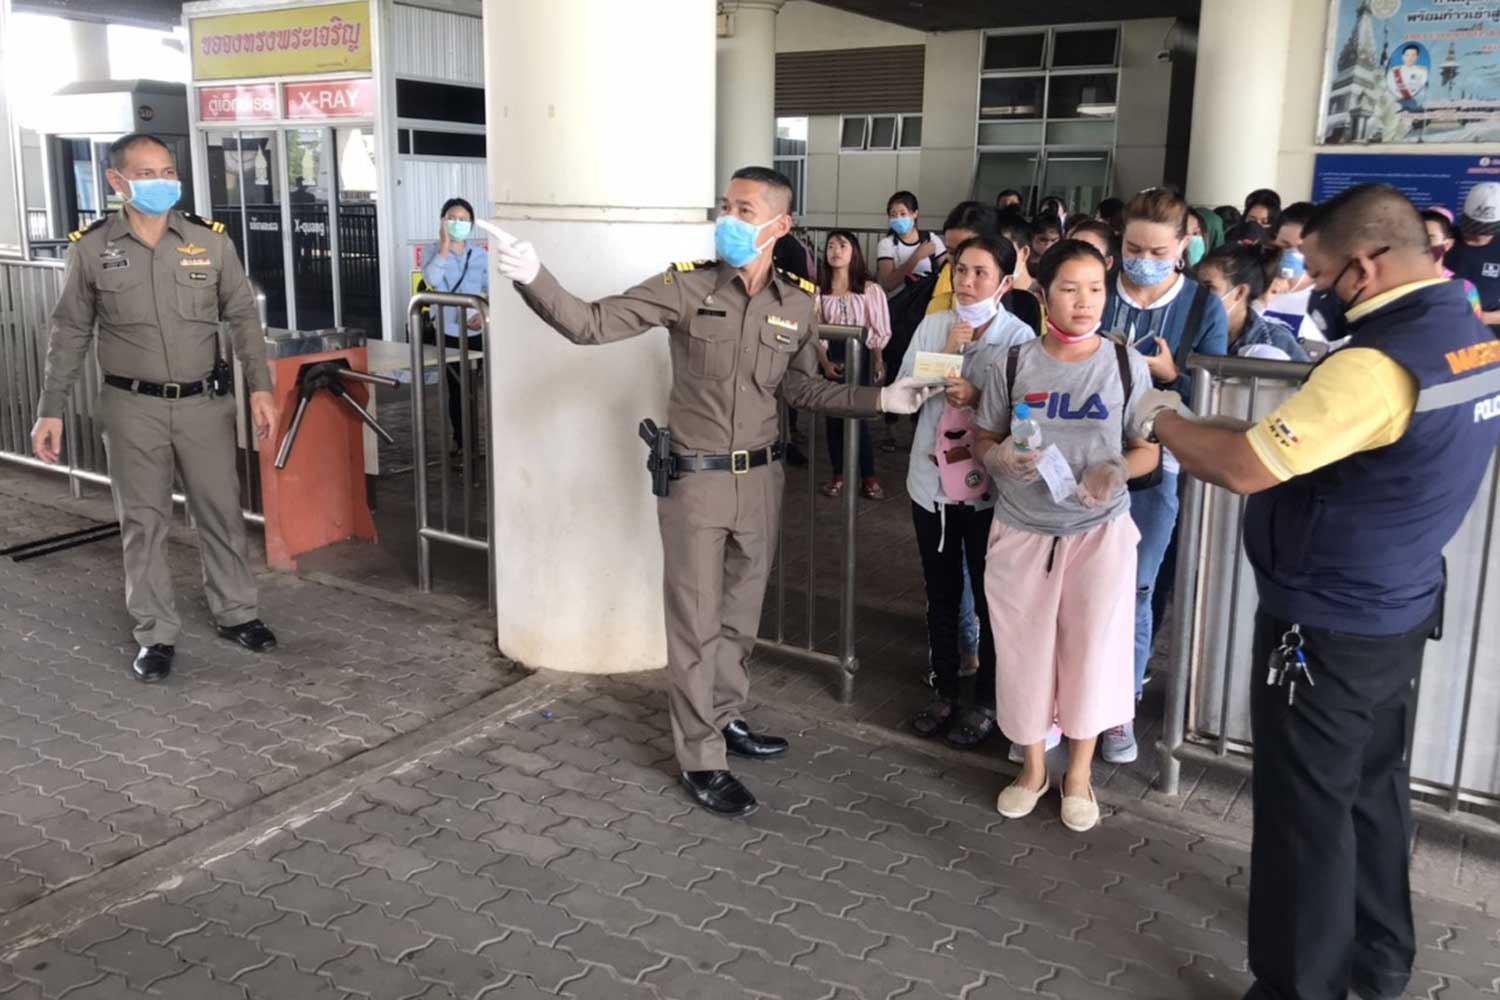 The bus terminal in Nakhon Phanom township is crowded with Lao and Vietnamese migrant workers who arrived from Bangkok and surrounding provinces following the shutdown orders. (Photo: Pattanapong Sripiachai)